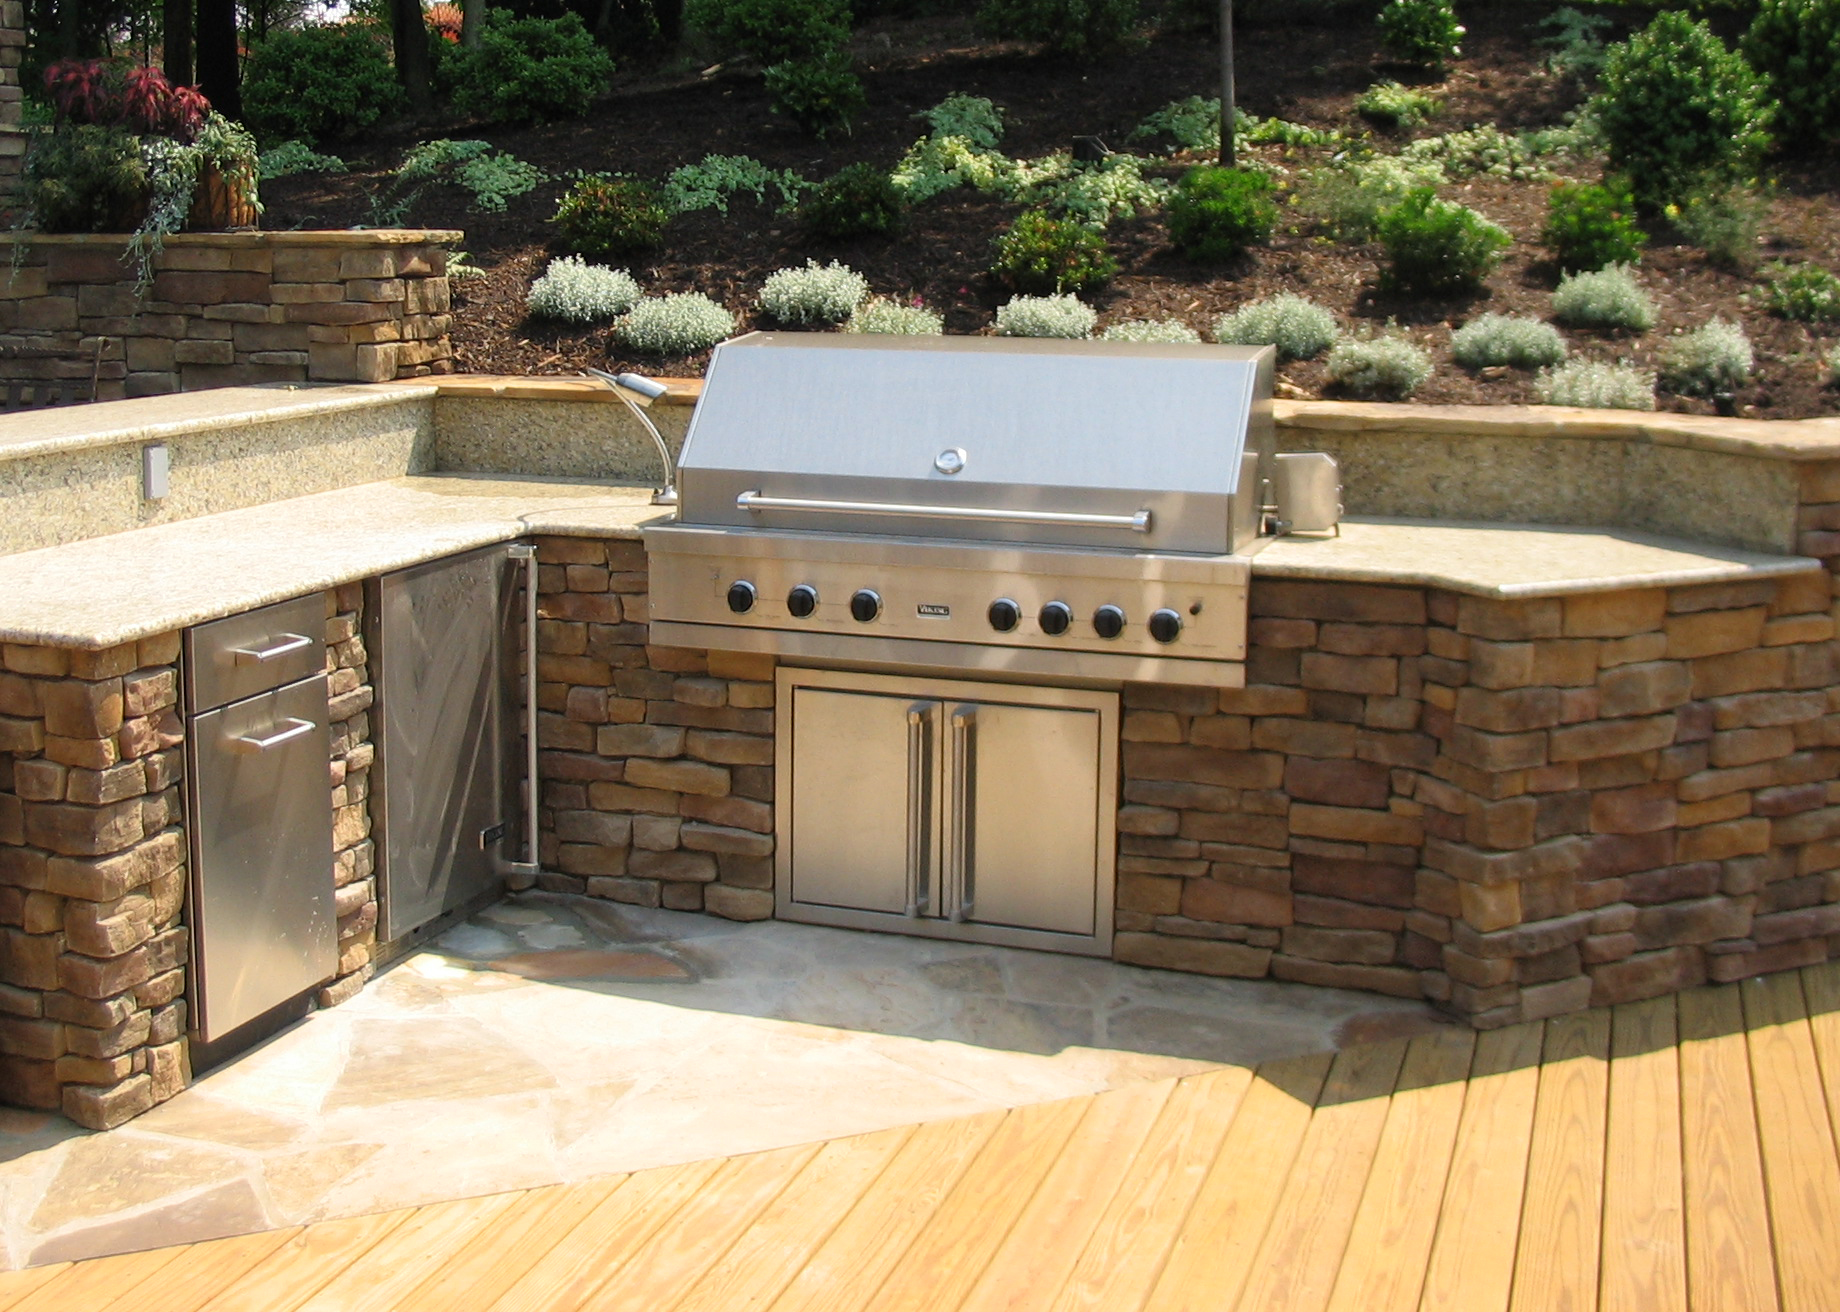 Designing an outdoor kitchen revolutionary gardens Outdoor kitchen designs